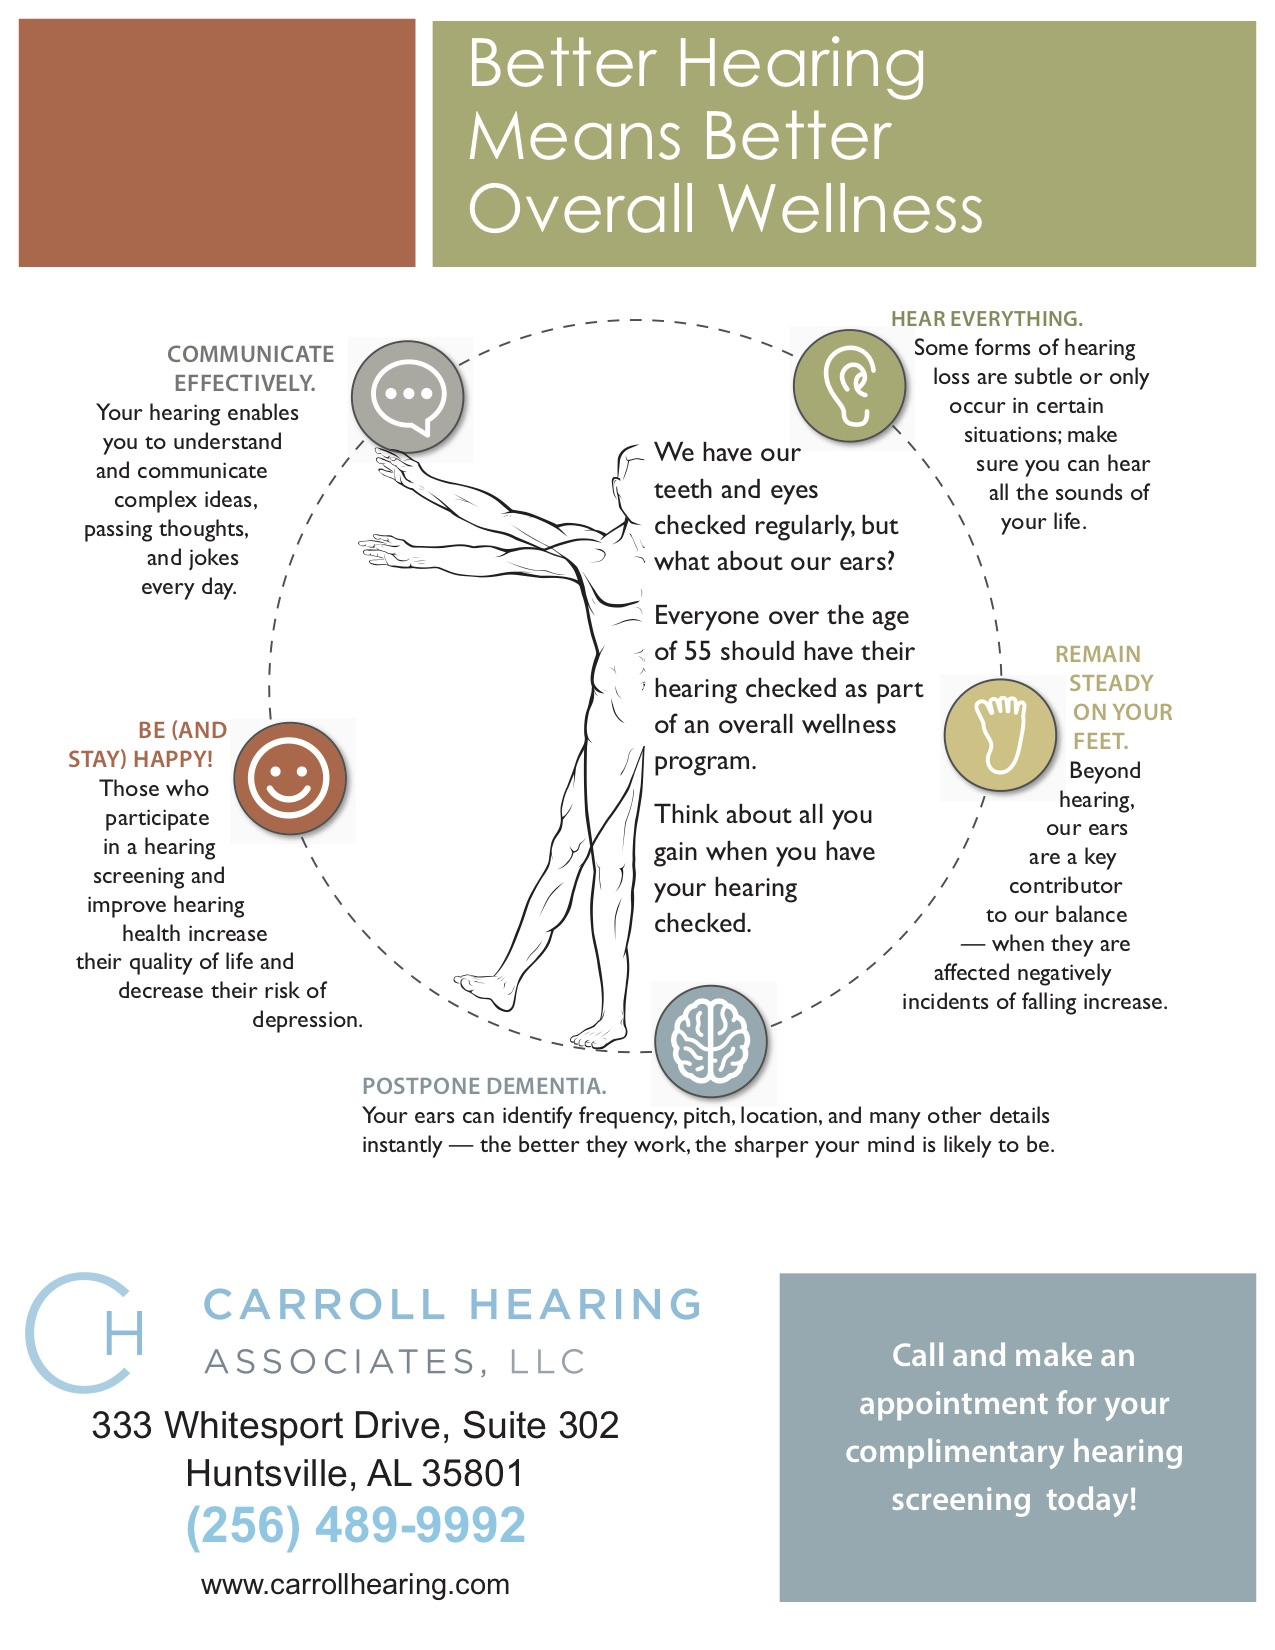 2019-08 Oticon Carroll Hearing AL Wellness flyer 1.jpg